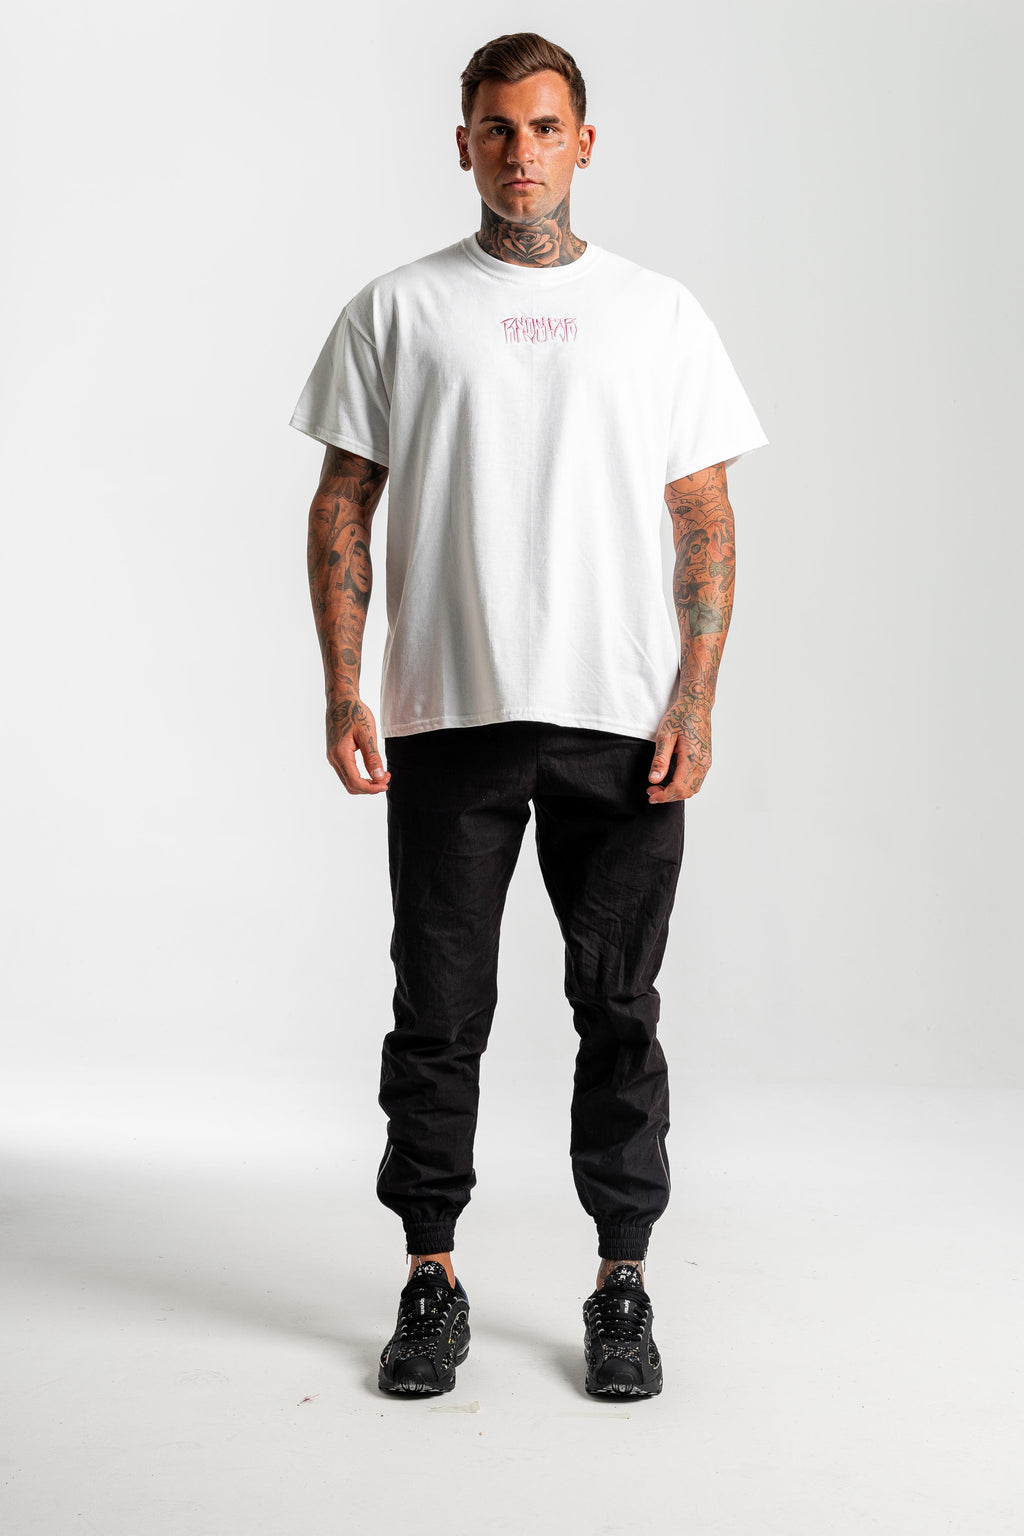 Onyx White Tshirt - Front embroidery & back print